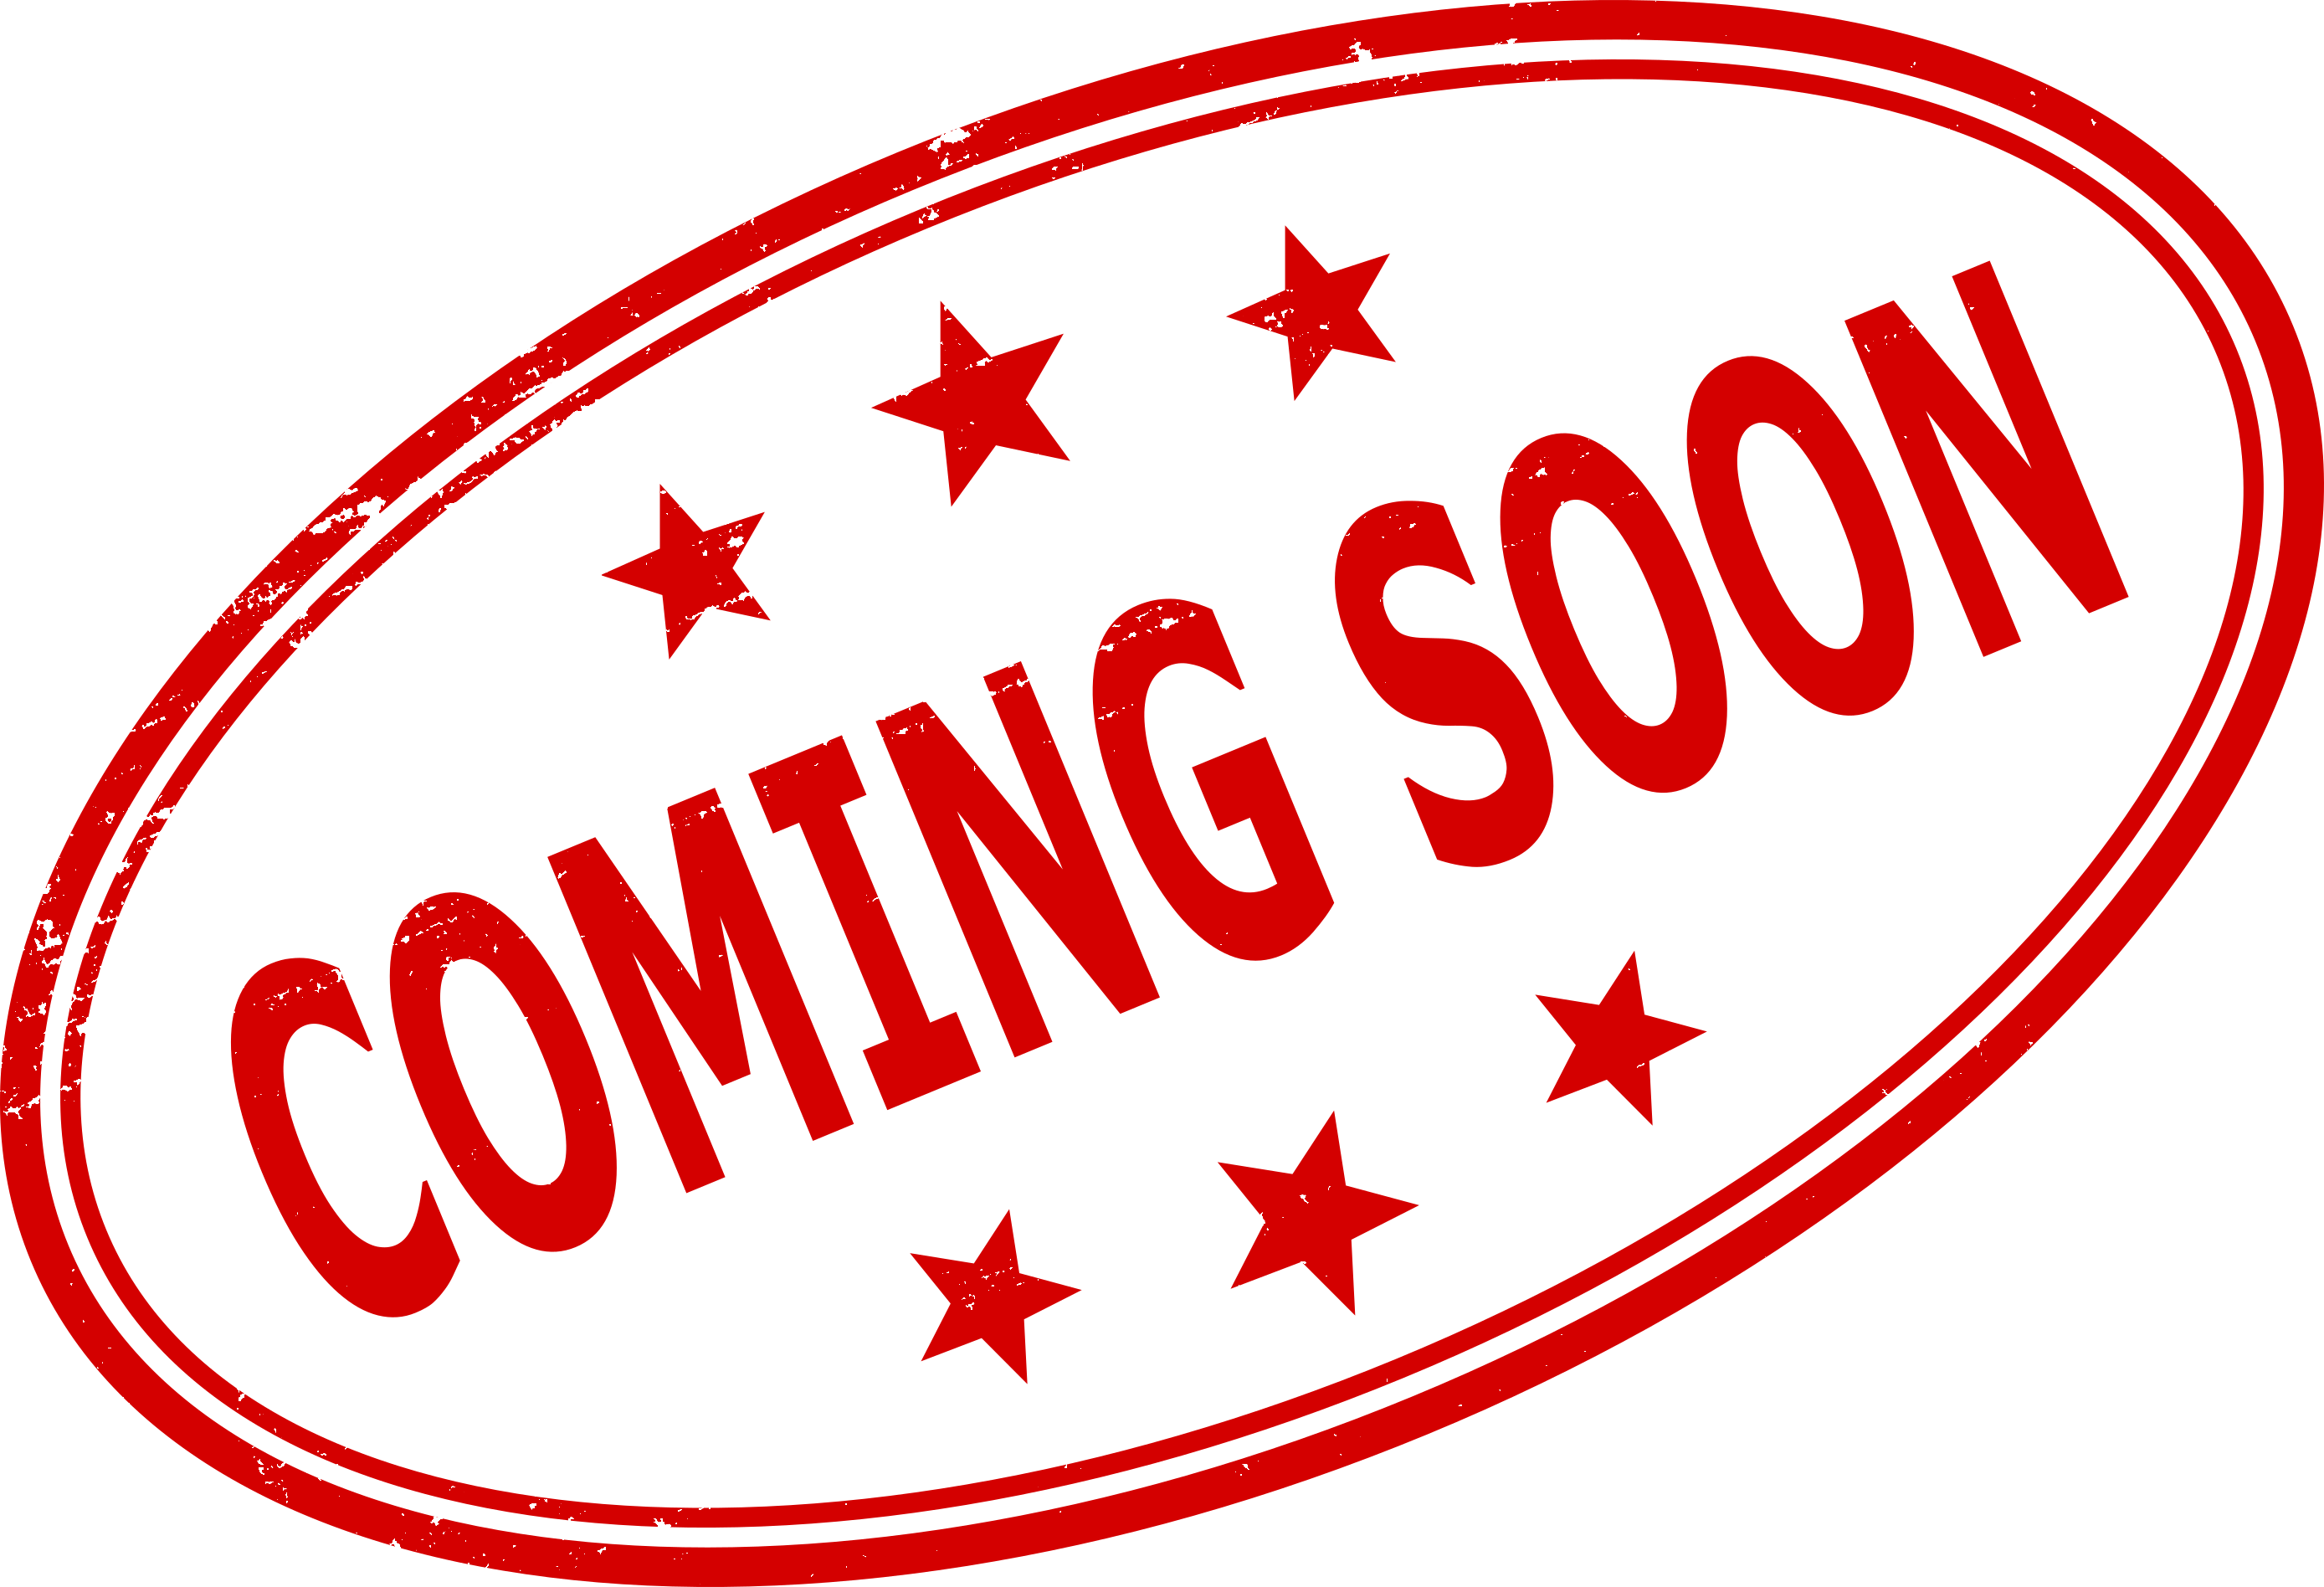 Free coming soon clipart